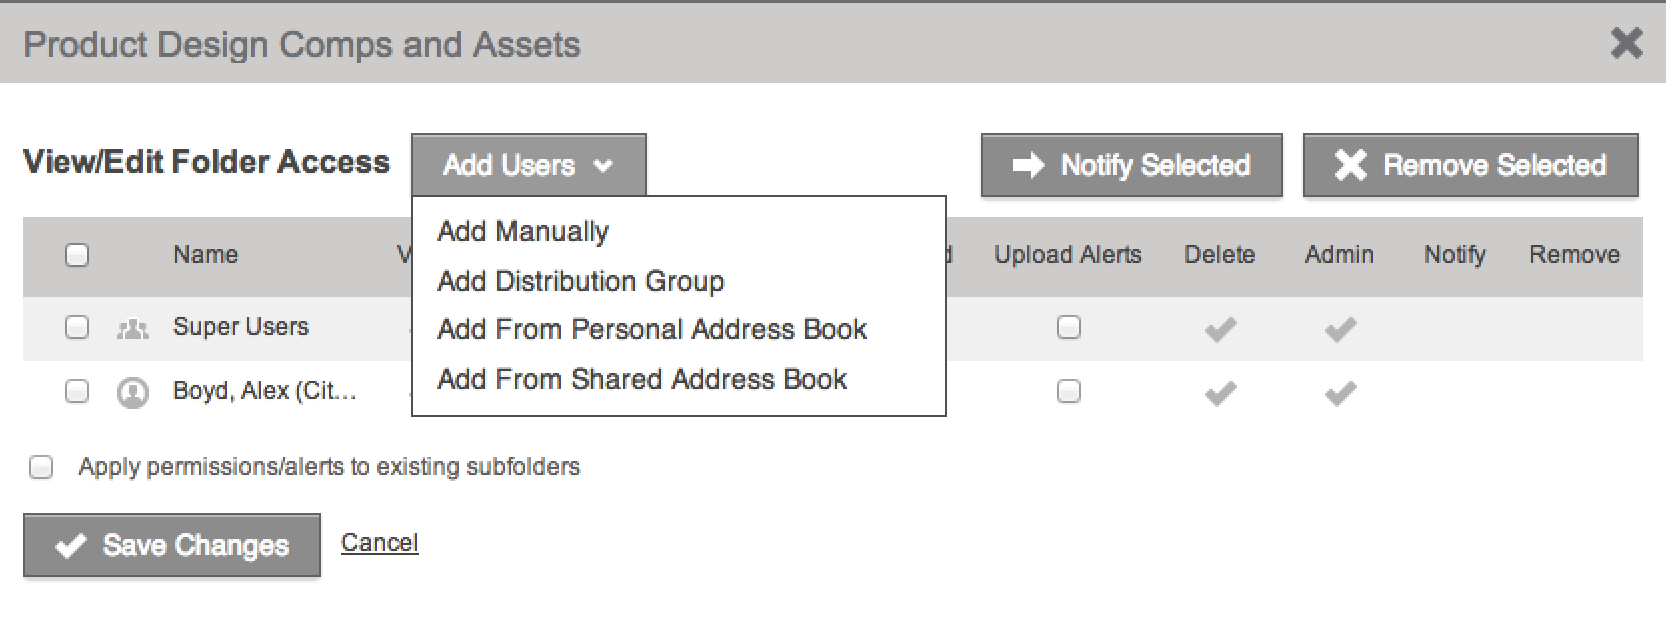 Sharing files with existing users Once you have granted new users access to your account, you can share folders with them in a few simple steps through the Folder Access list.